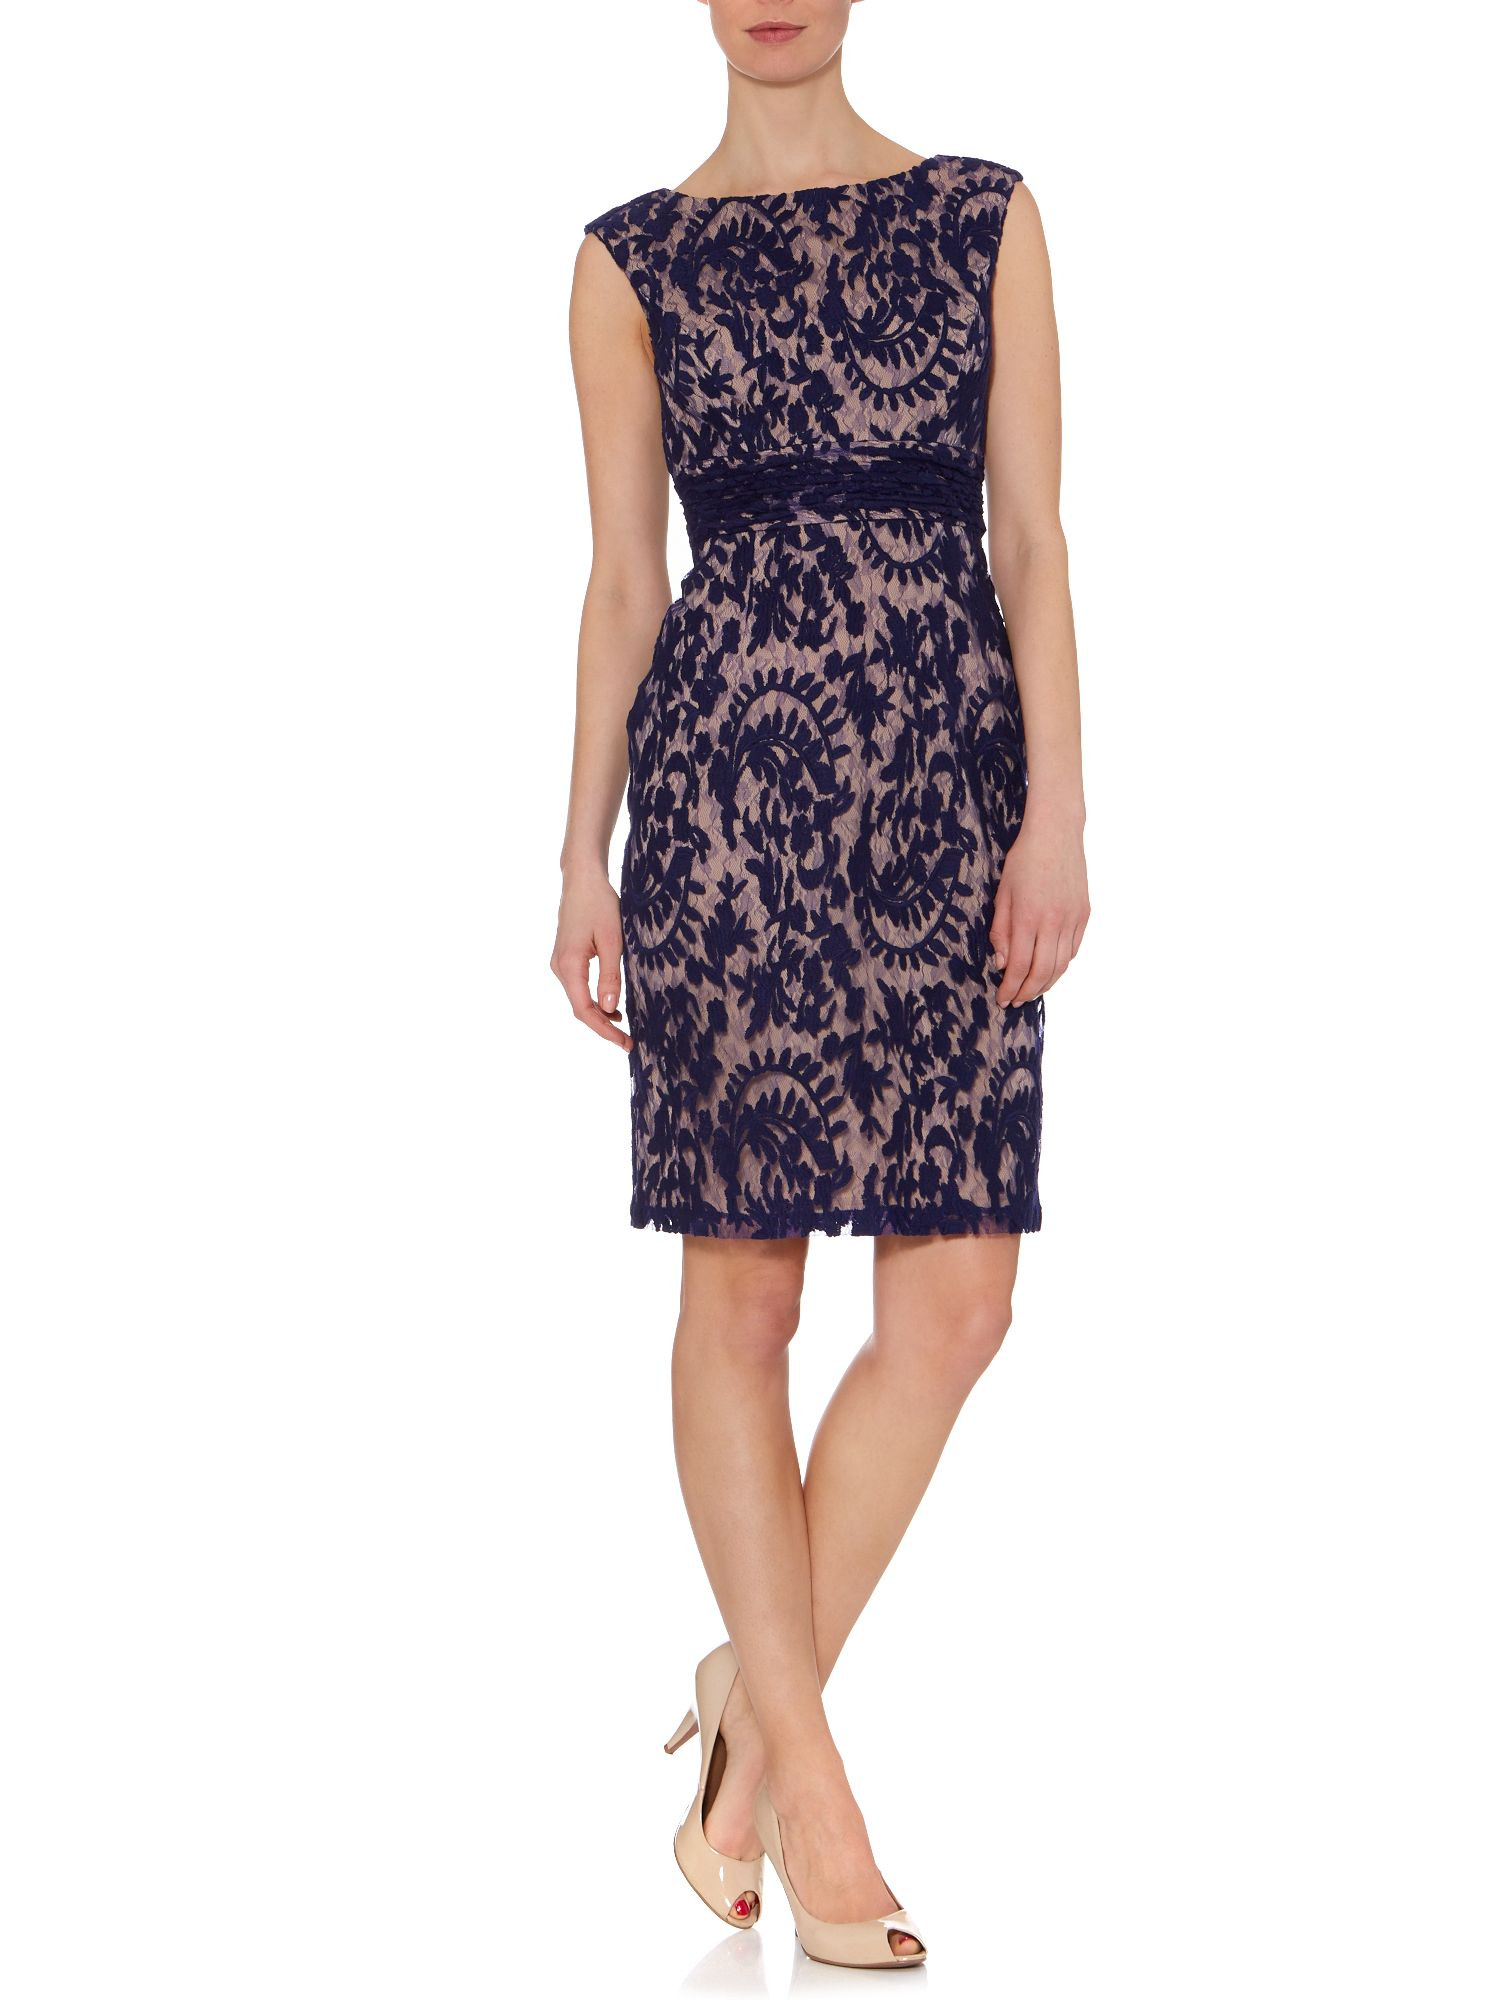 Brocade lace shift dress